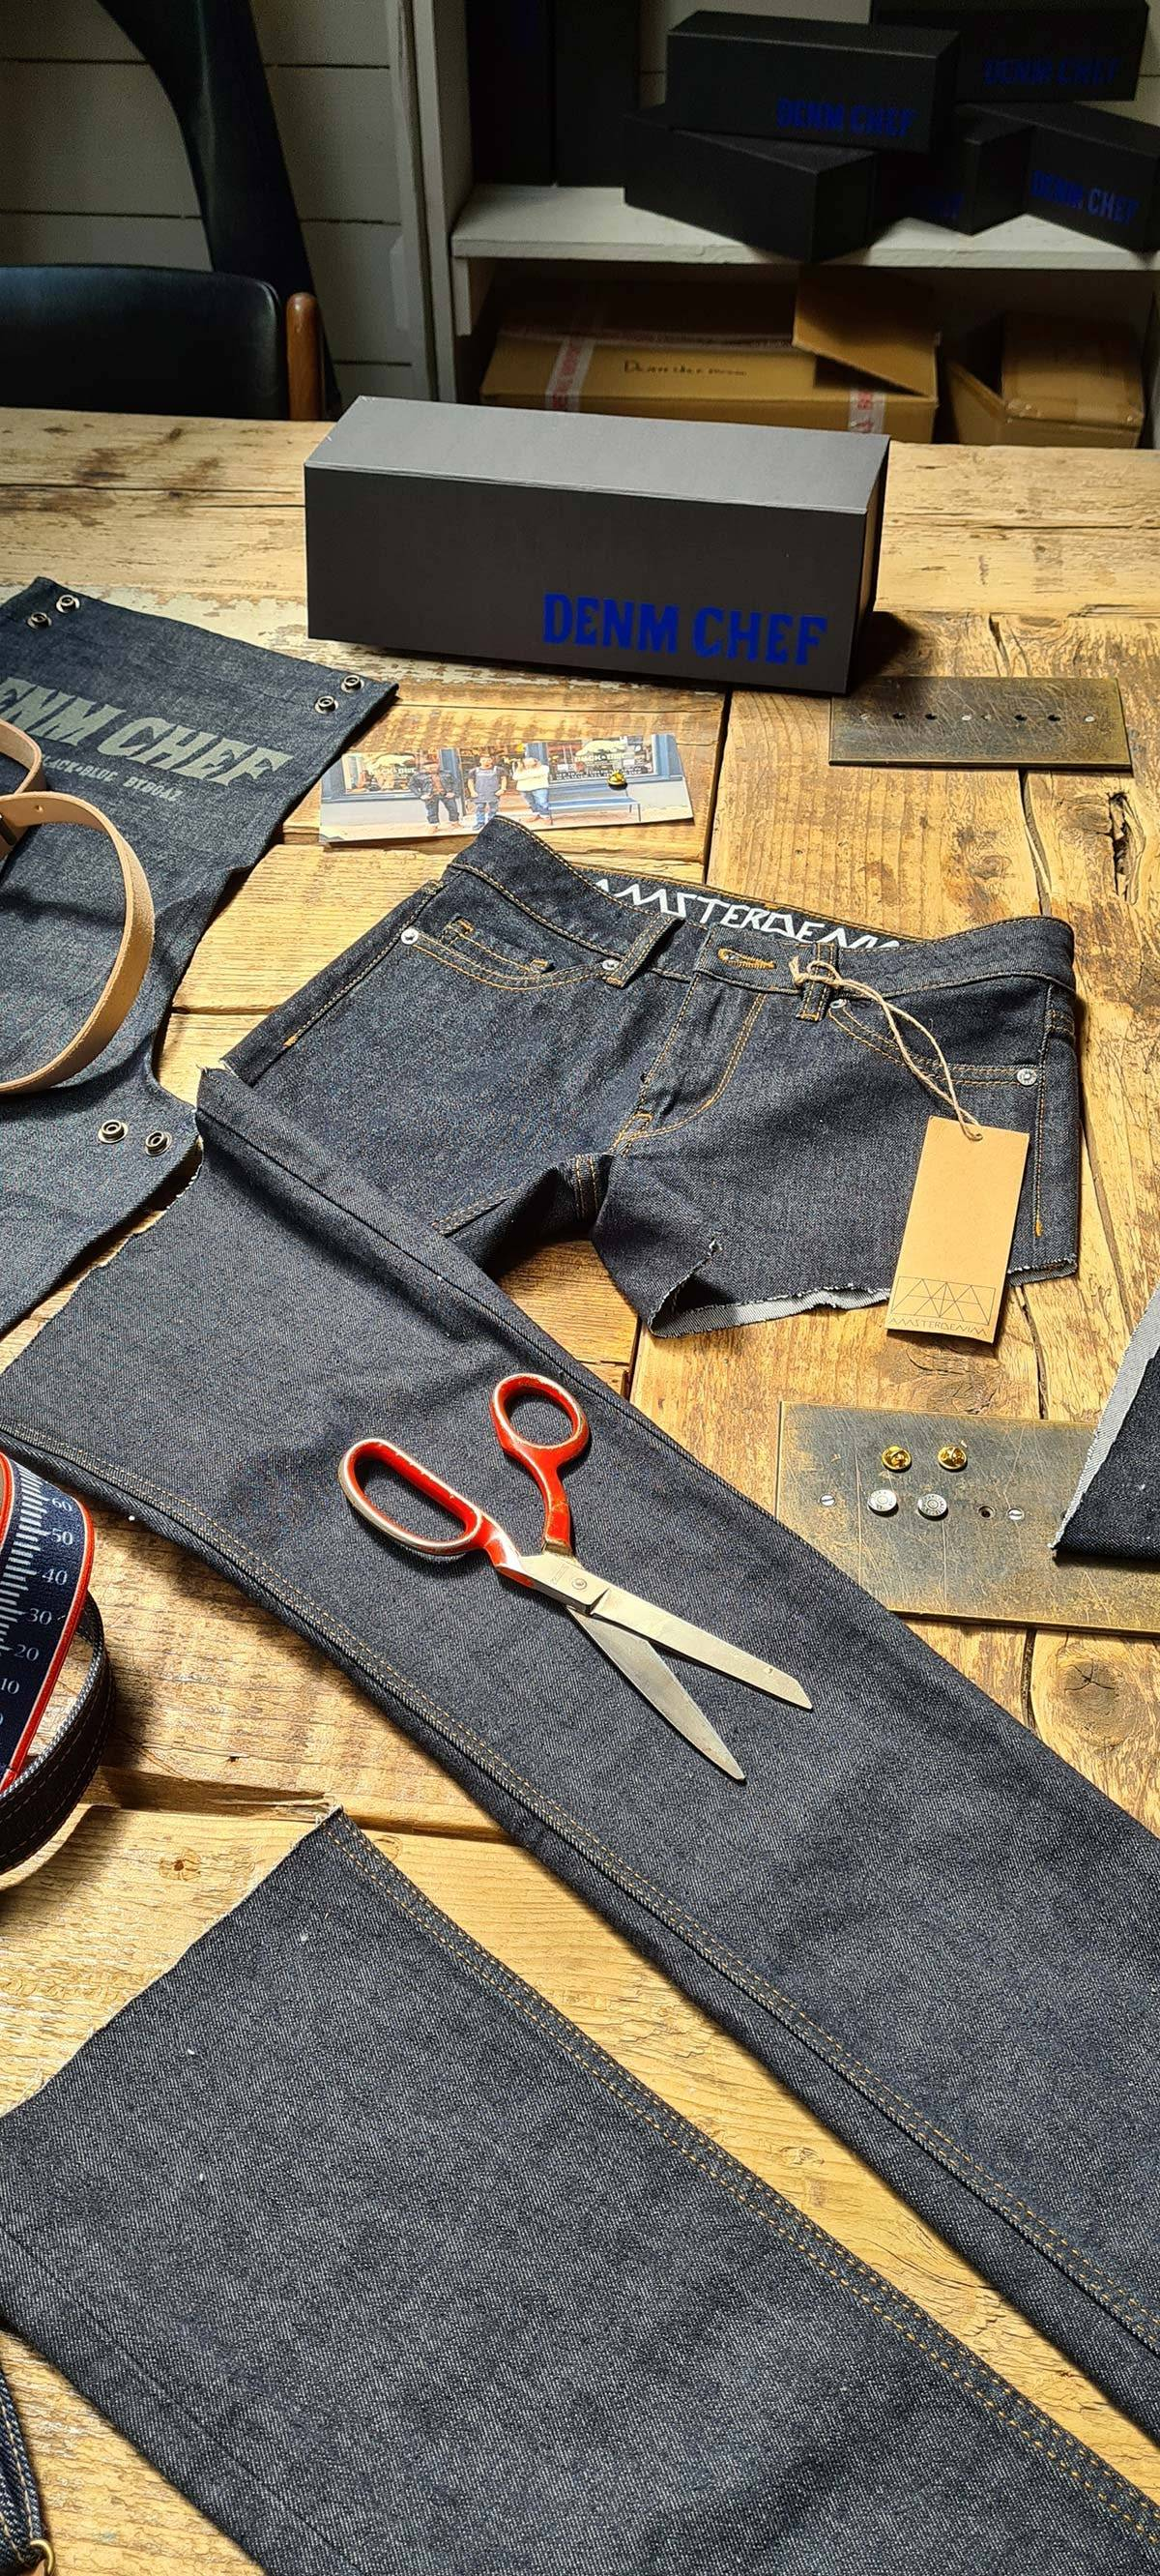 Amsterdenim SJAAN hotpants: A zero waste upcycling project